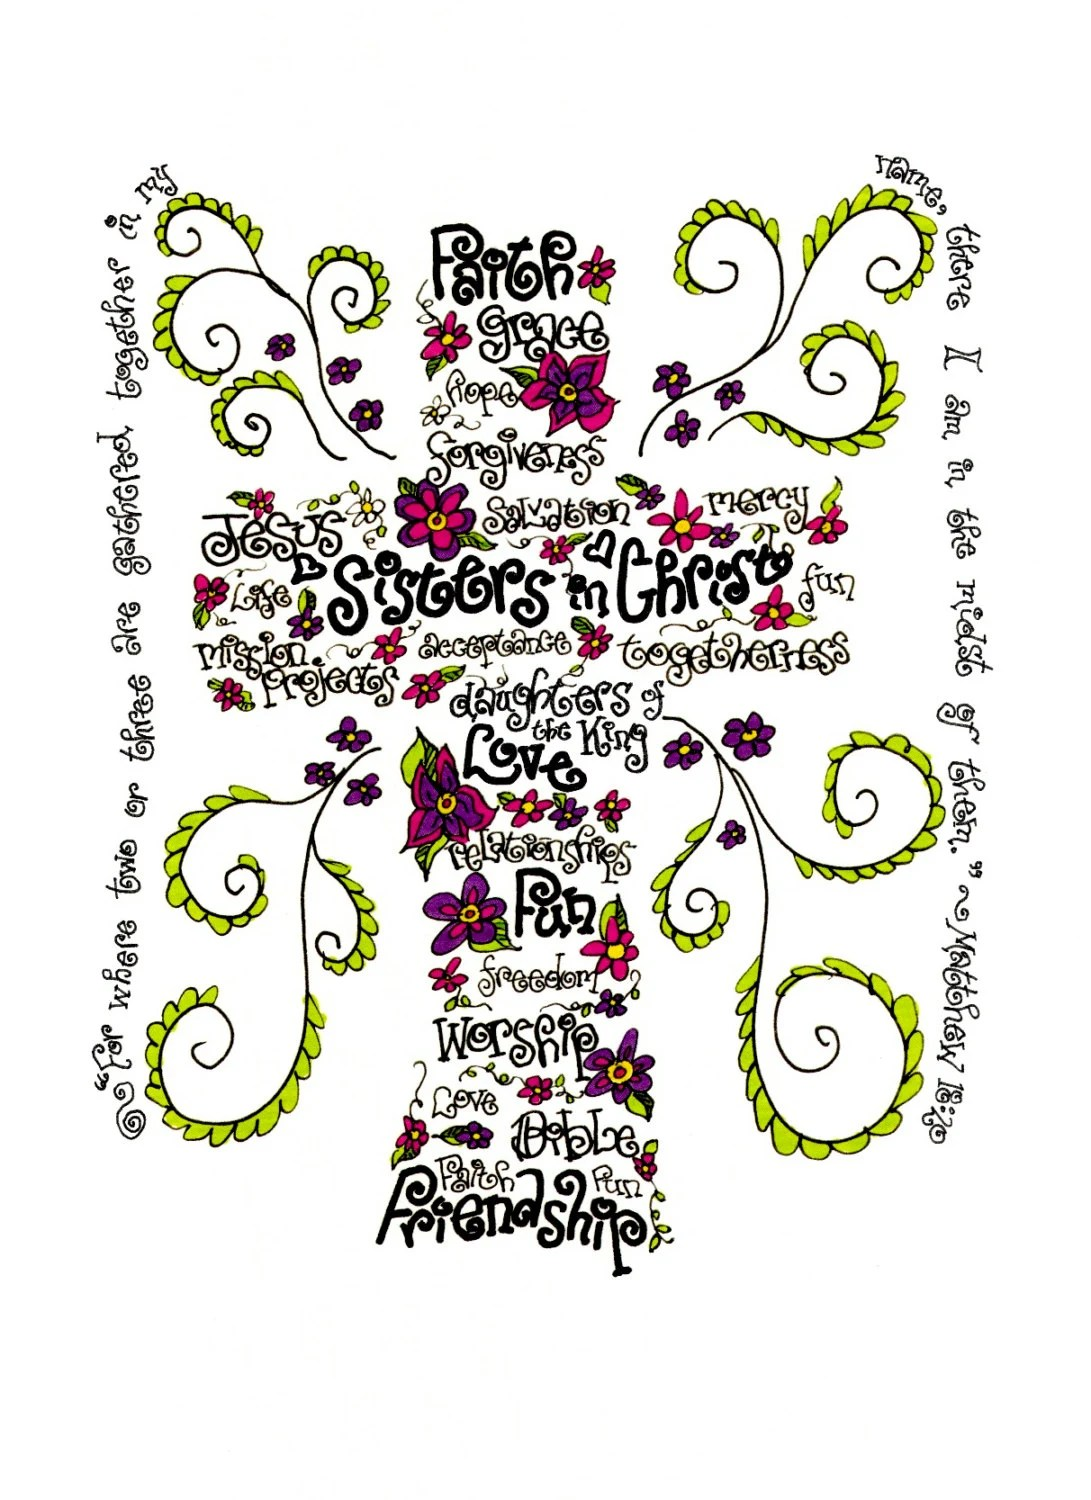 Sisters In Christ Print Of Hand Drawn Cross Wordart With